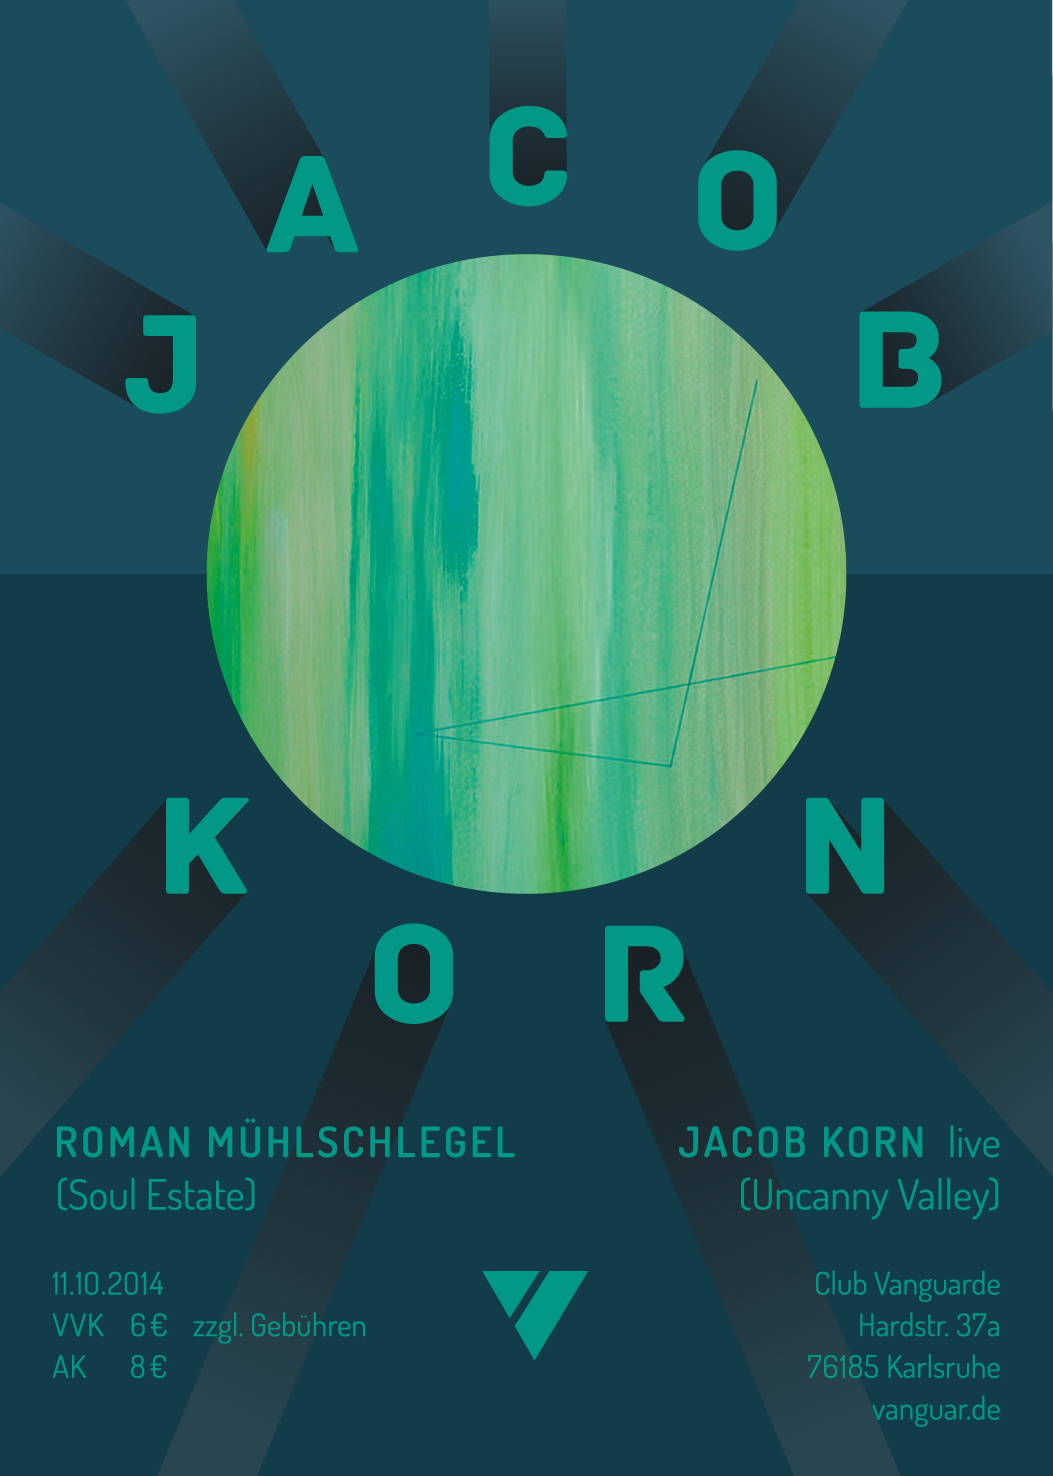 11.10.2014 | JACOB KORN (Uncanny Valley) & ROMAN MÜHLSCHLEGEL (Soul Estate)